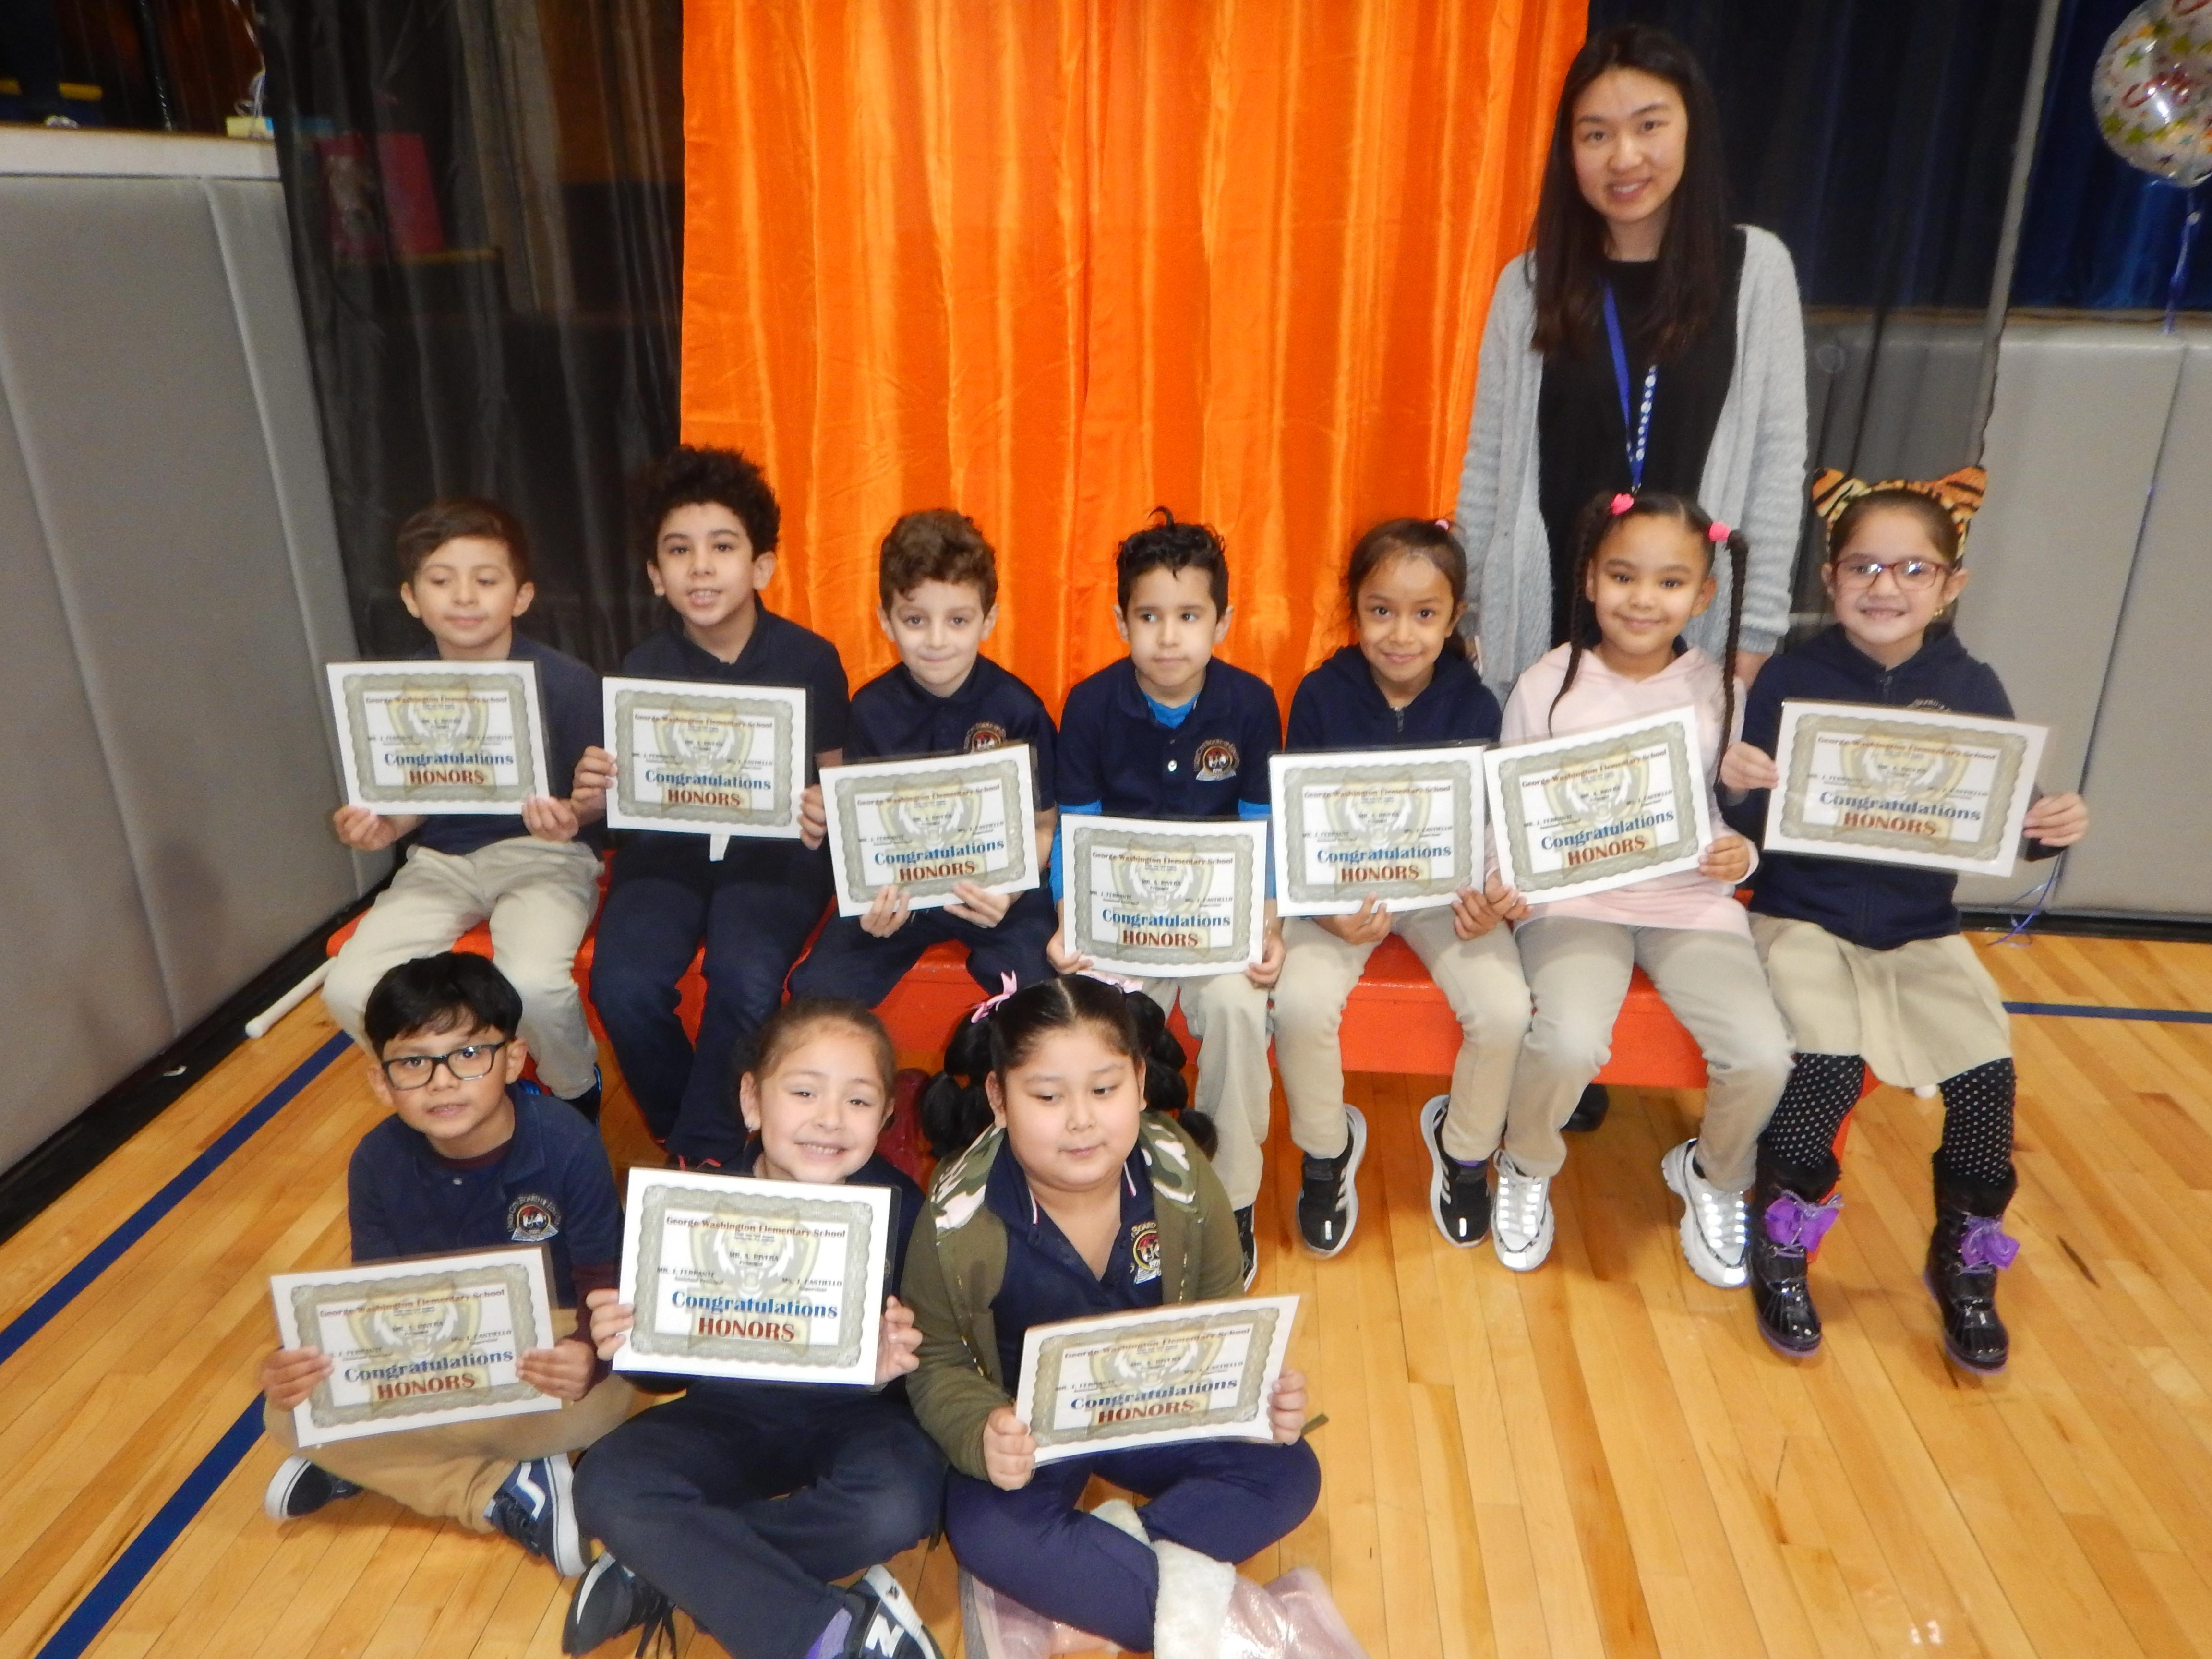 10 Honor Roll Students with their Teacher and certificates